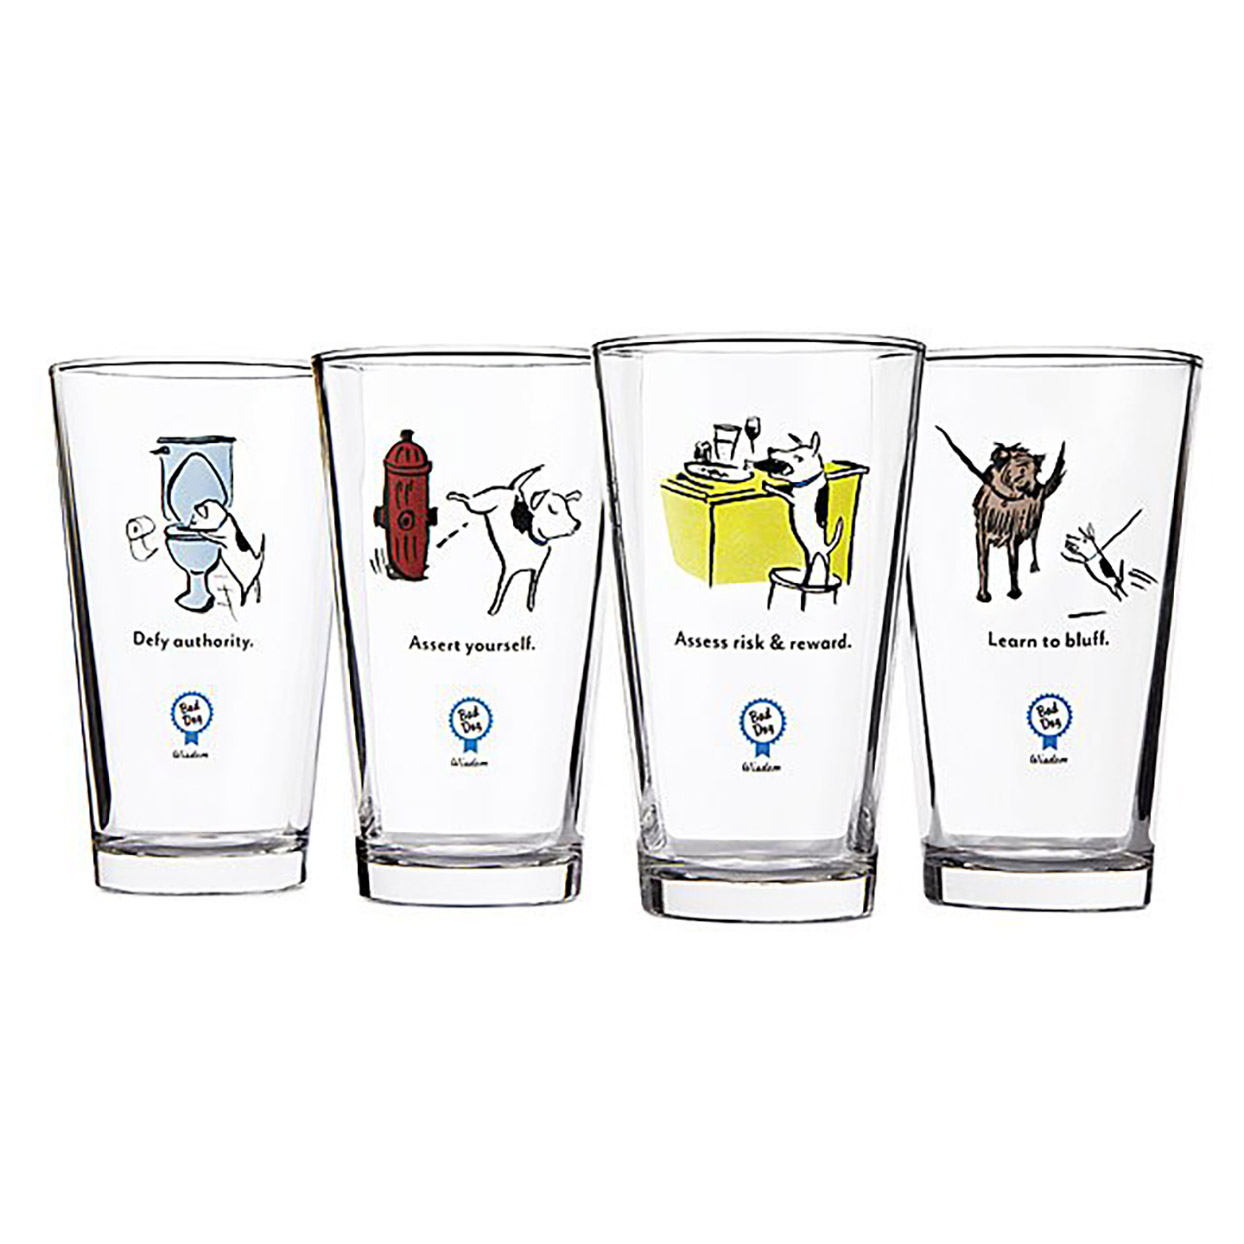 Funny dog comic glasses for beer or cocktails